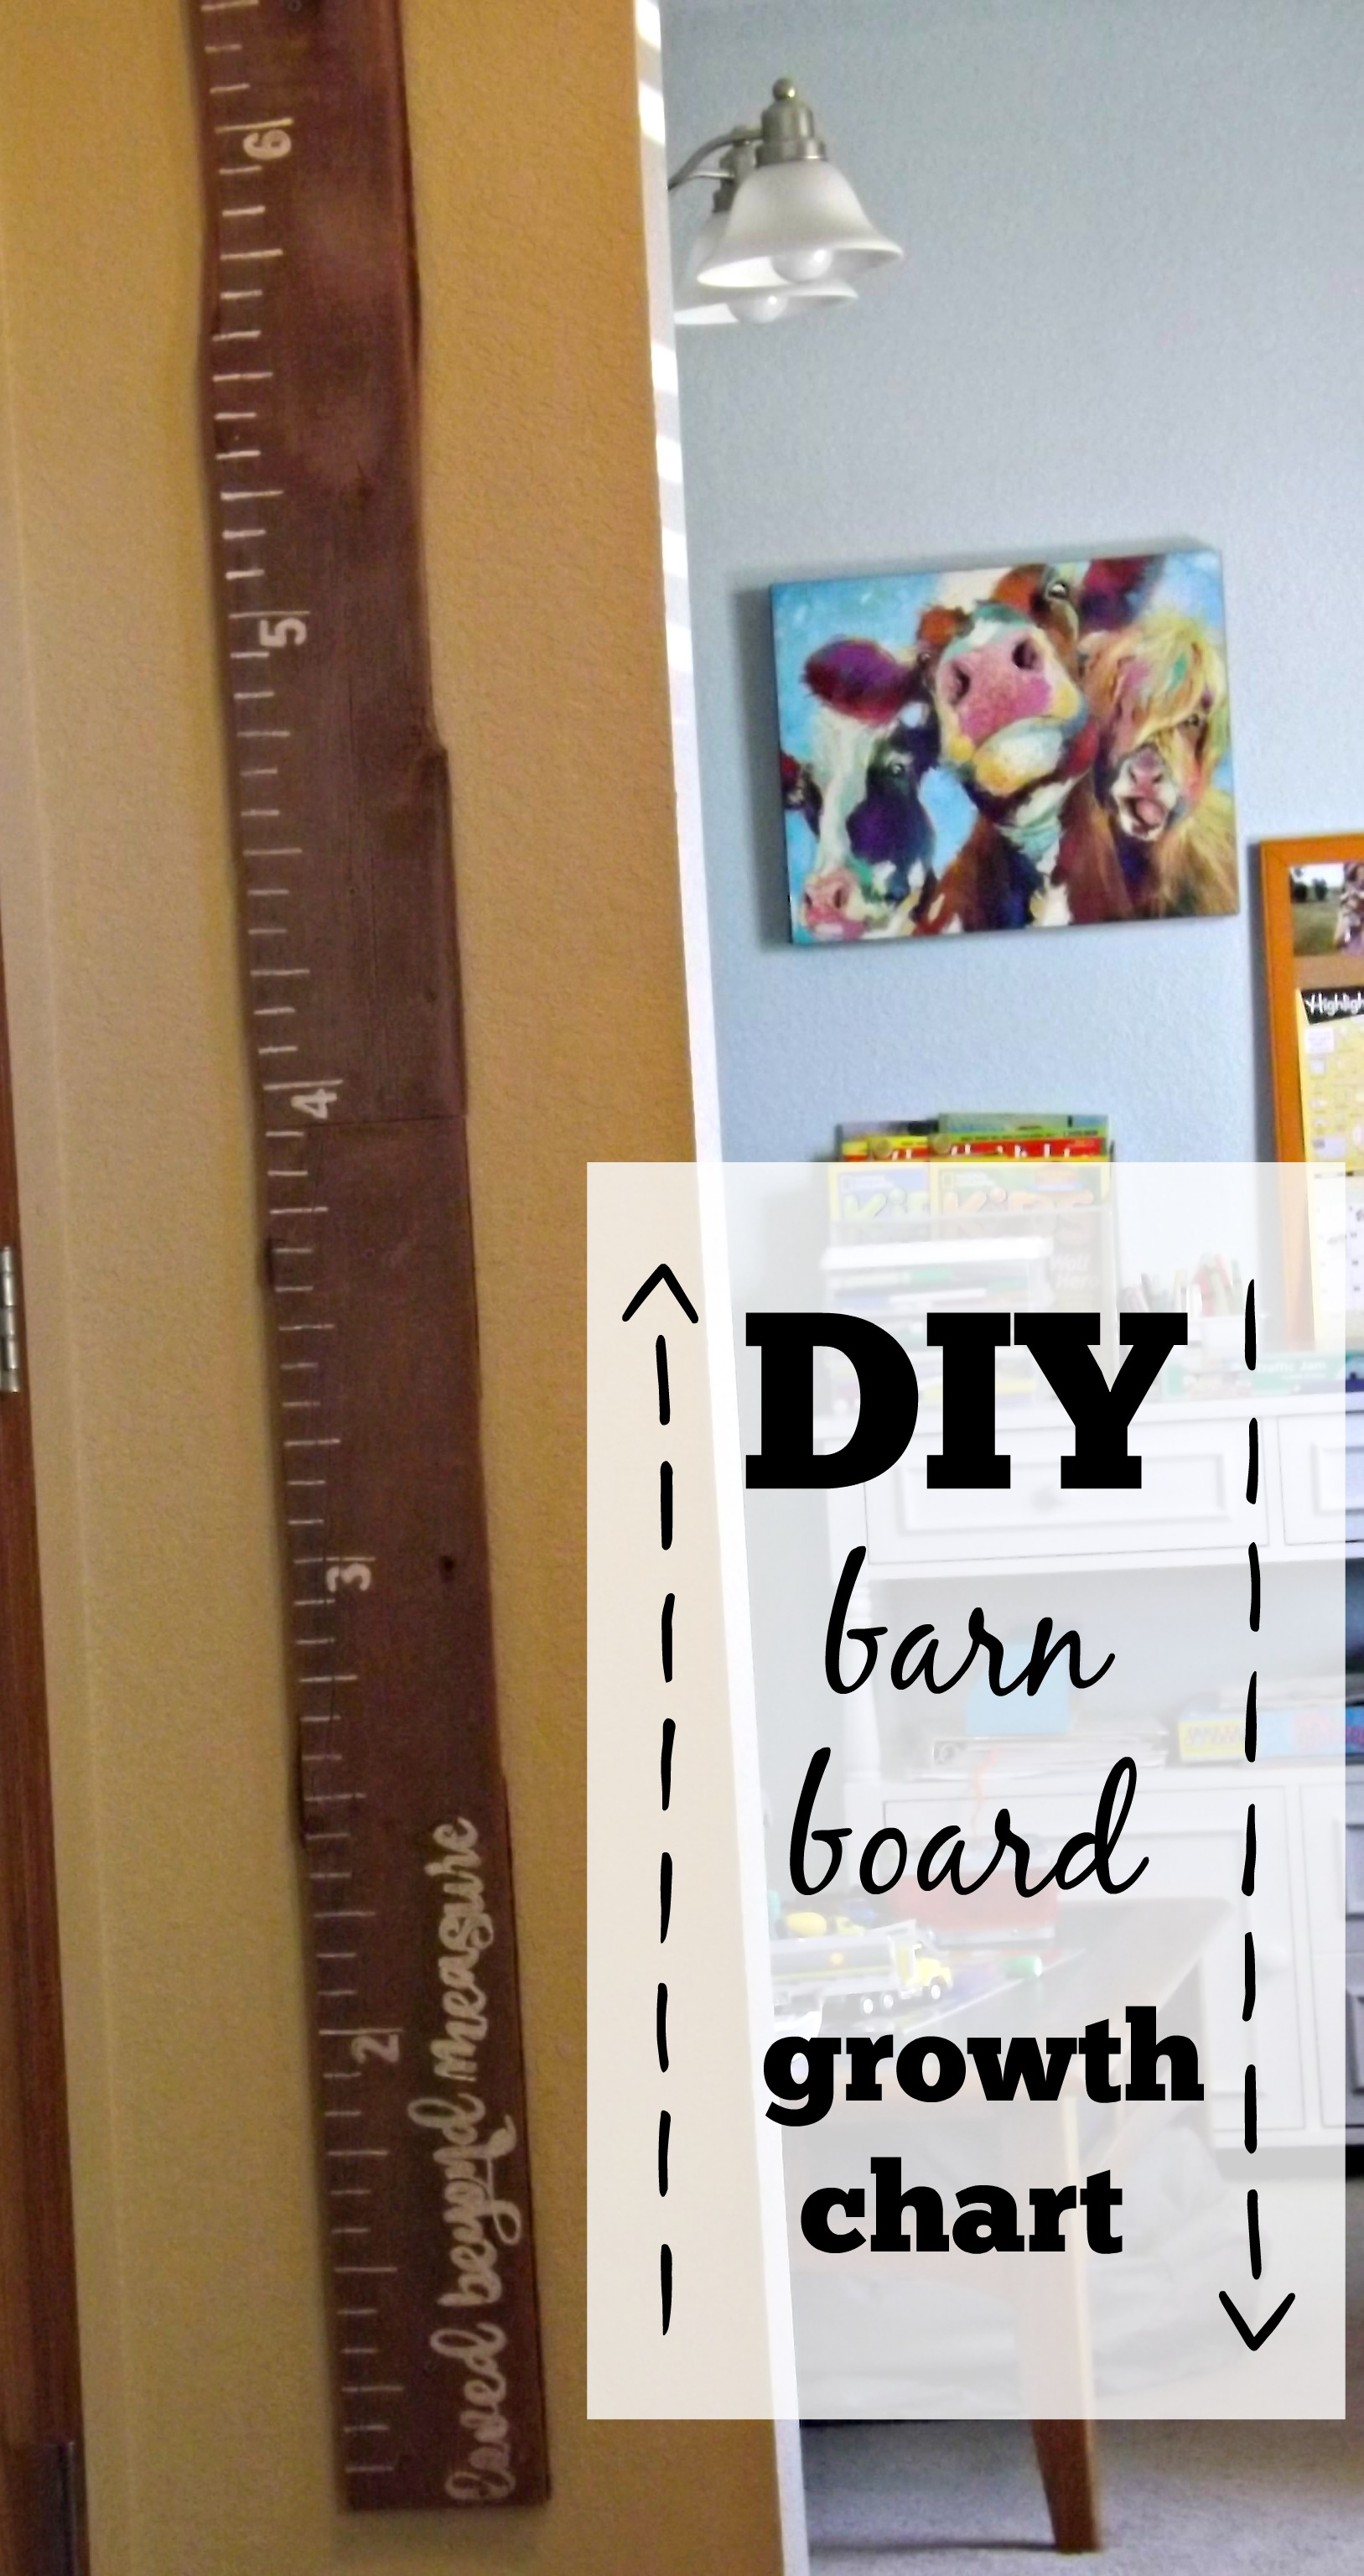 Diy barn board growth chart have a little faith blog shop barn board growth chart geenschuldenfo Choice Image